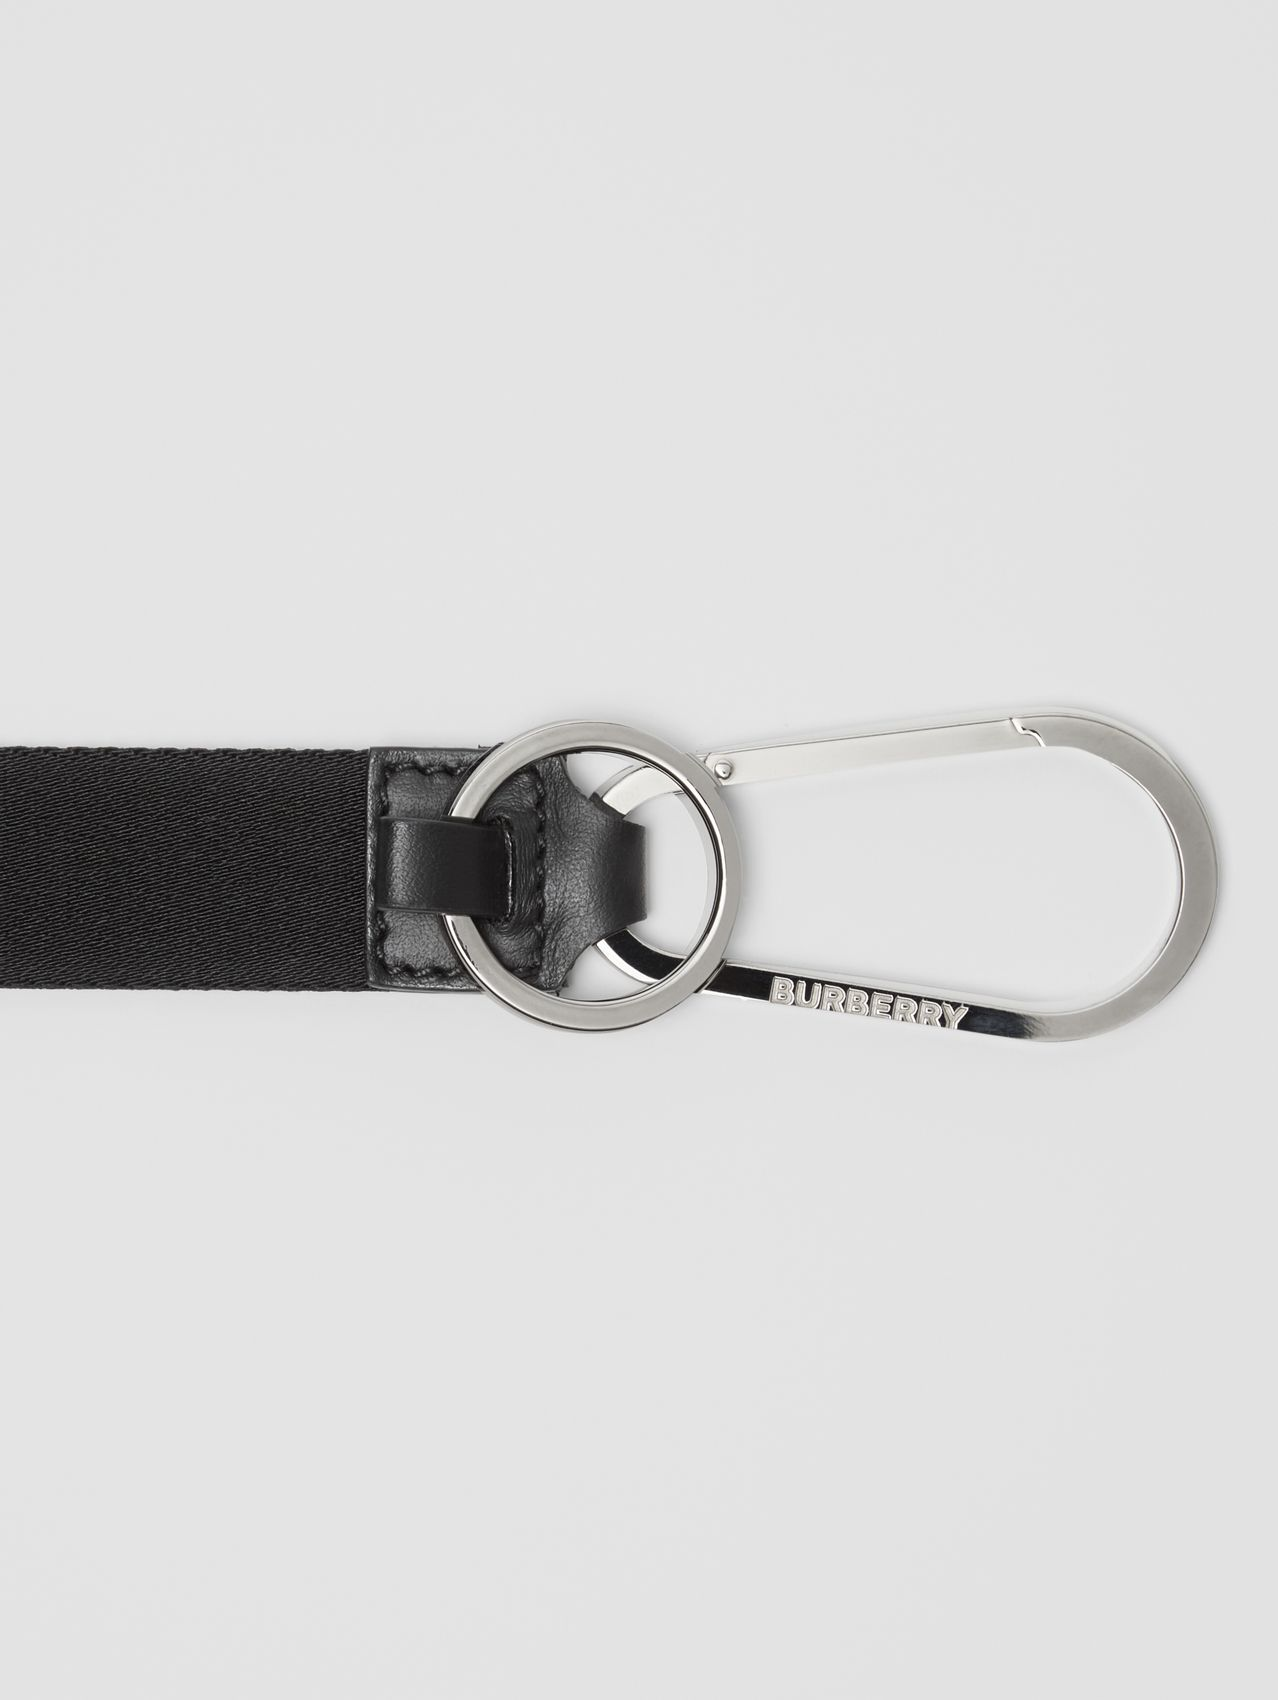 Logo Detail Lanyard in Black